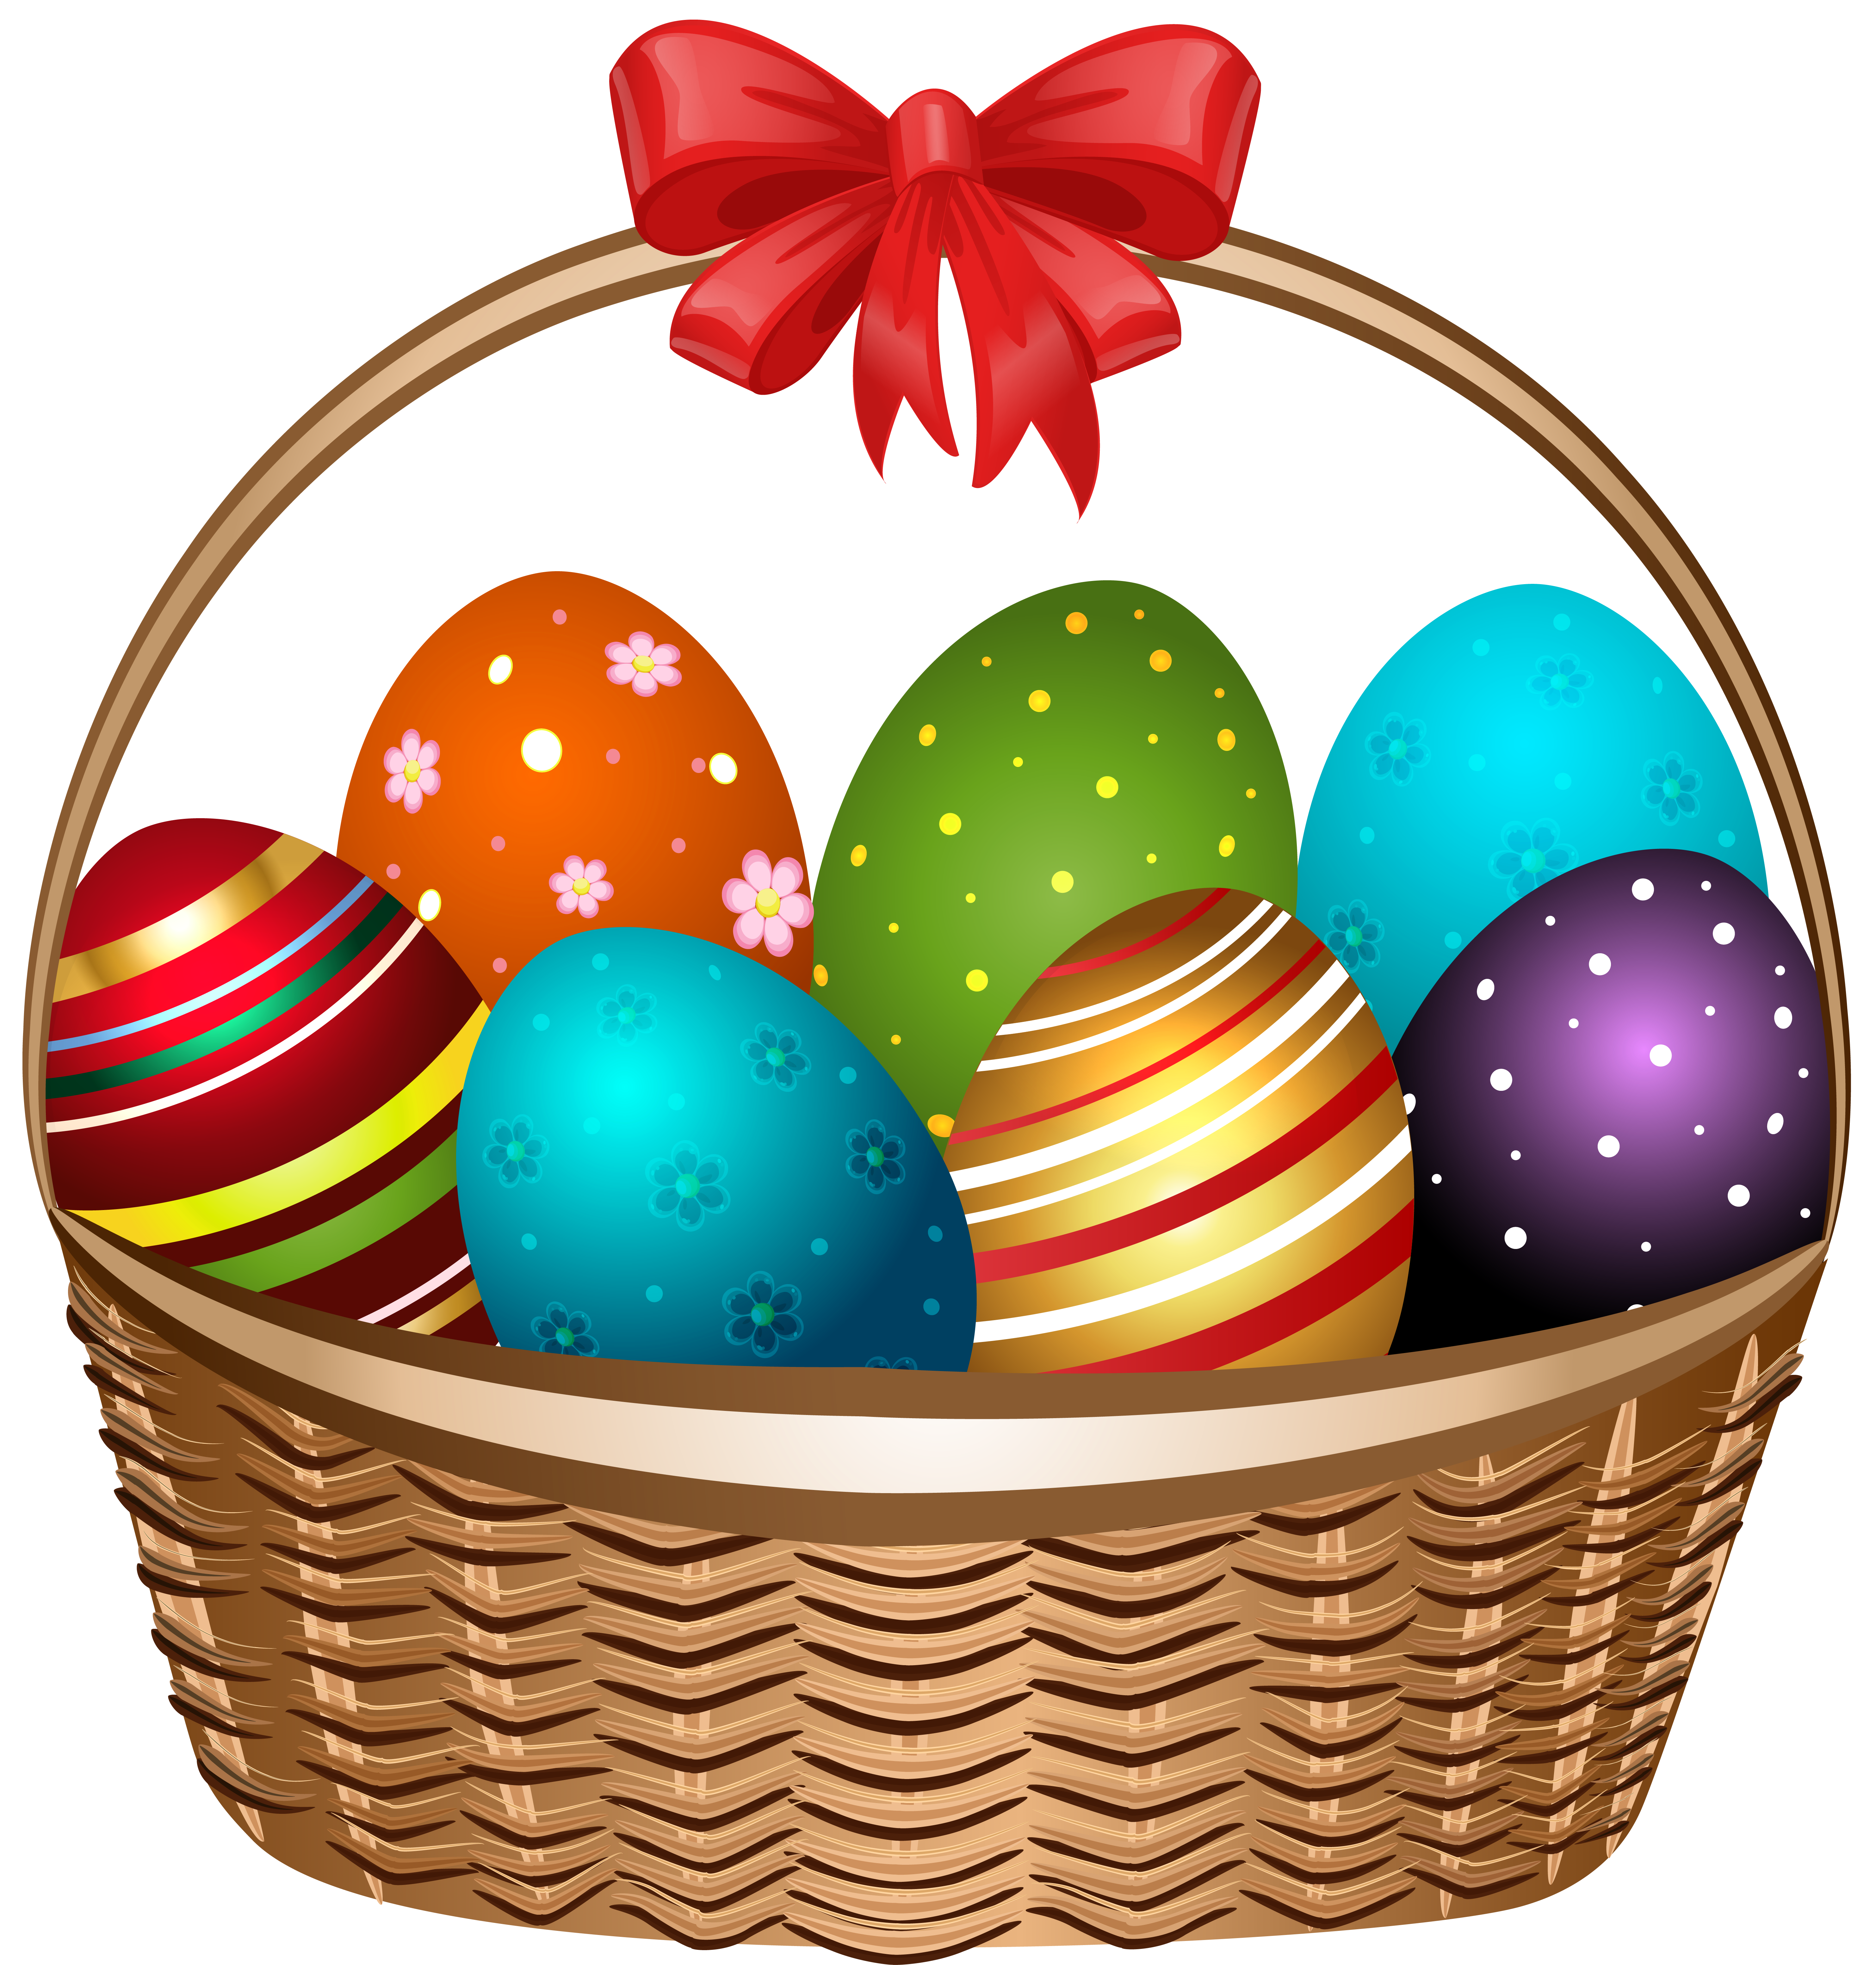 Easter basket clipart 20 free Cliparts | Download images ...